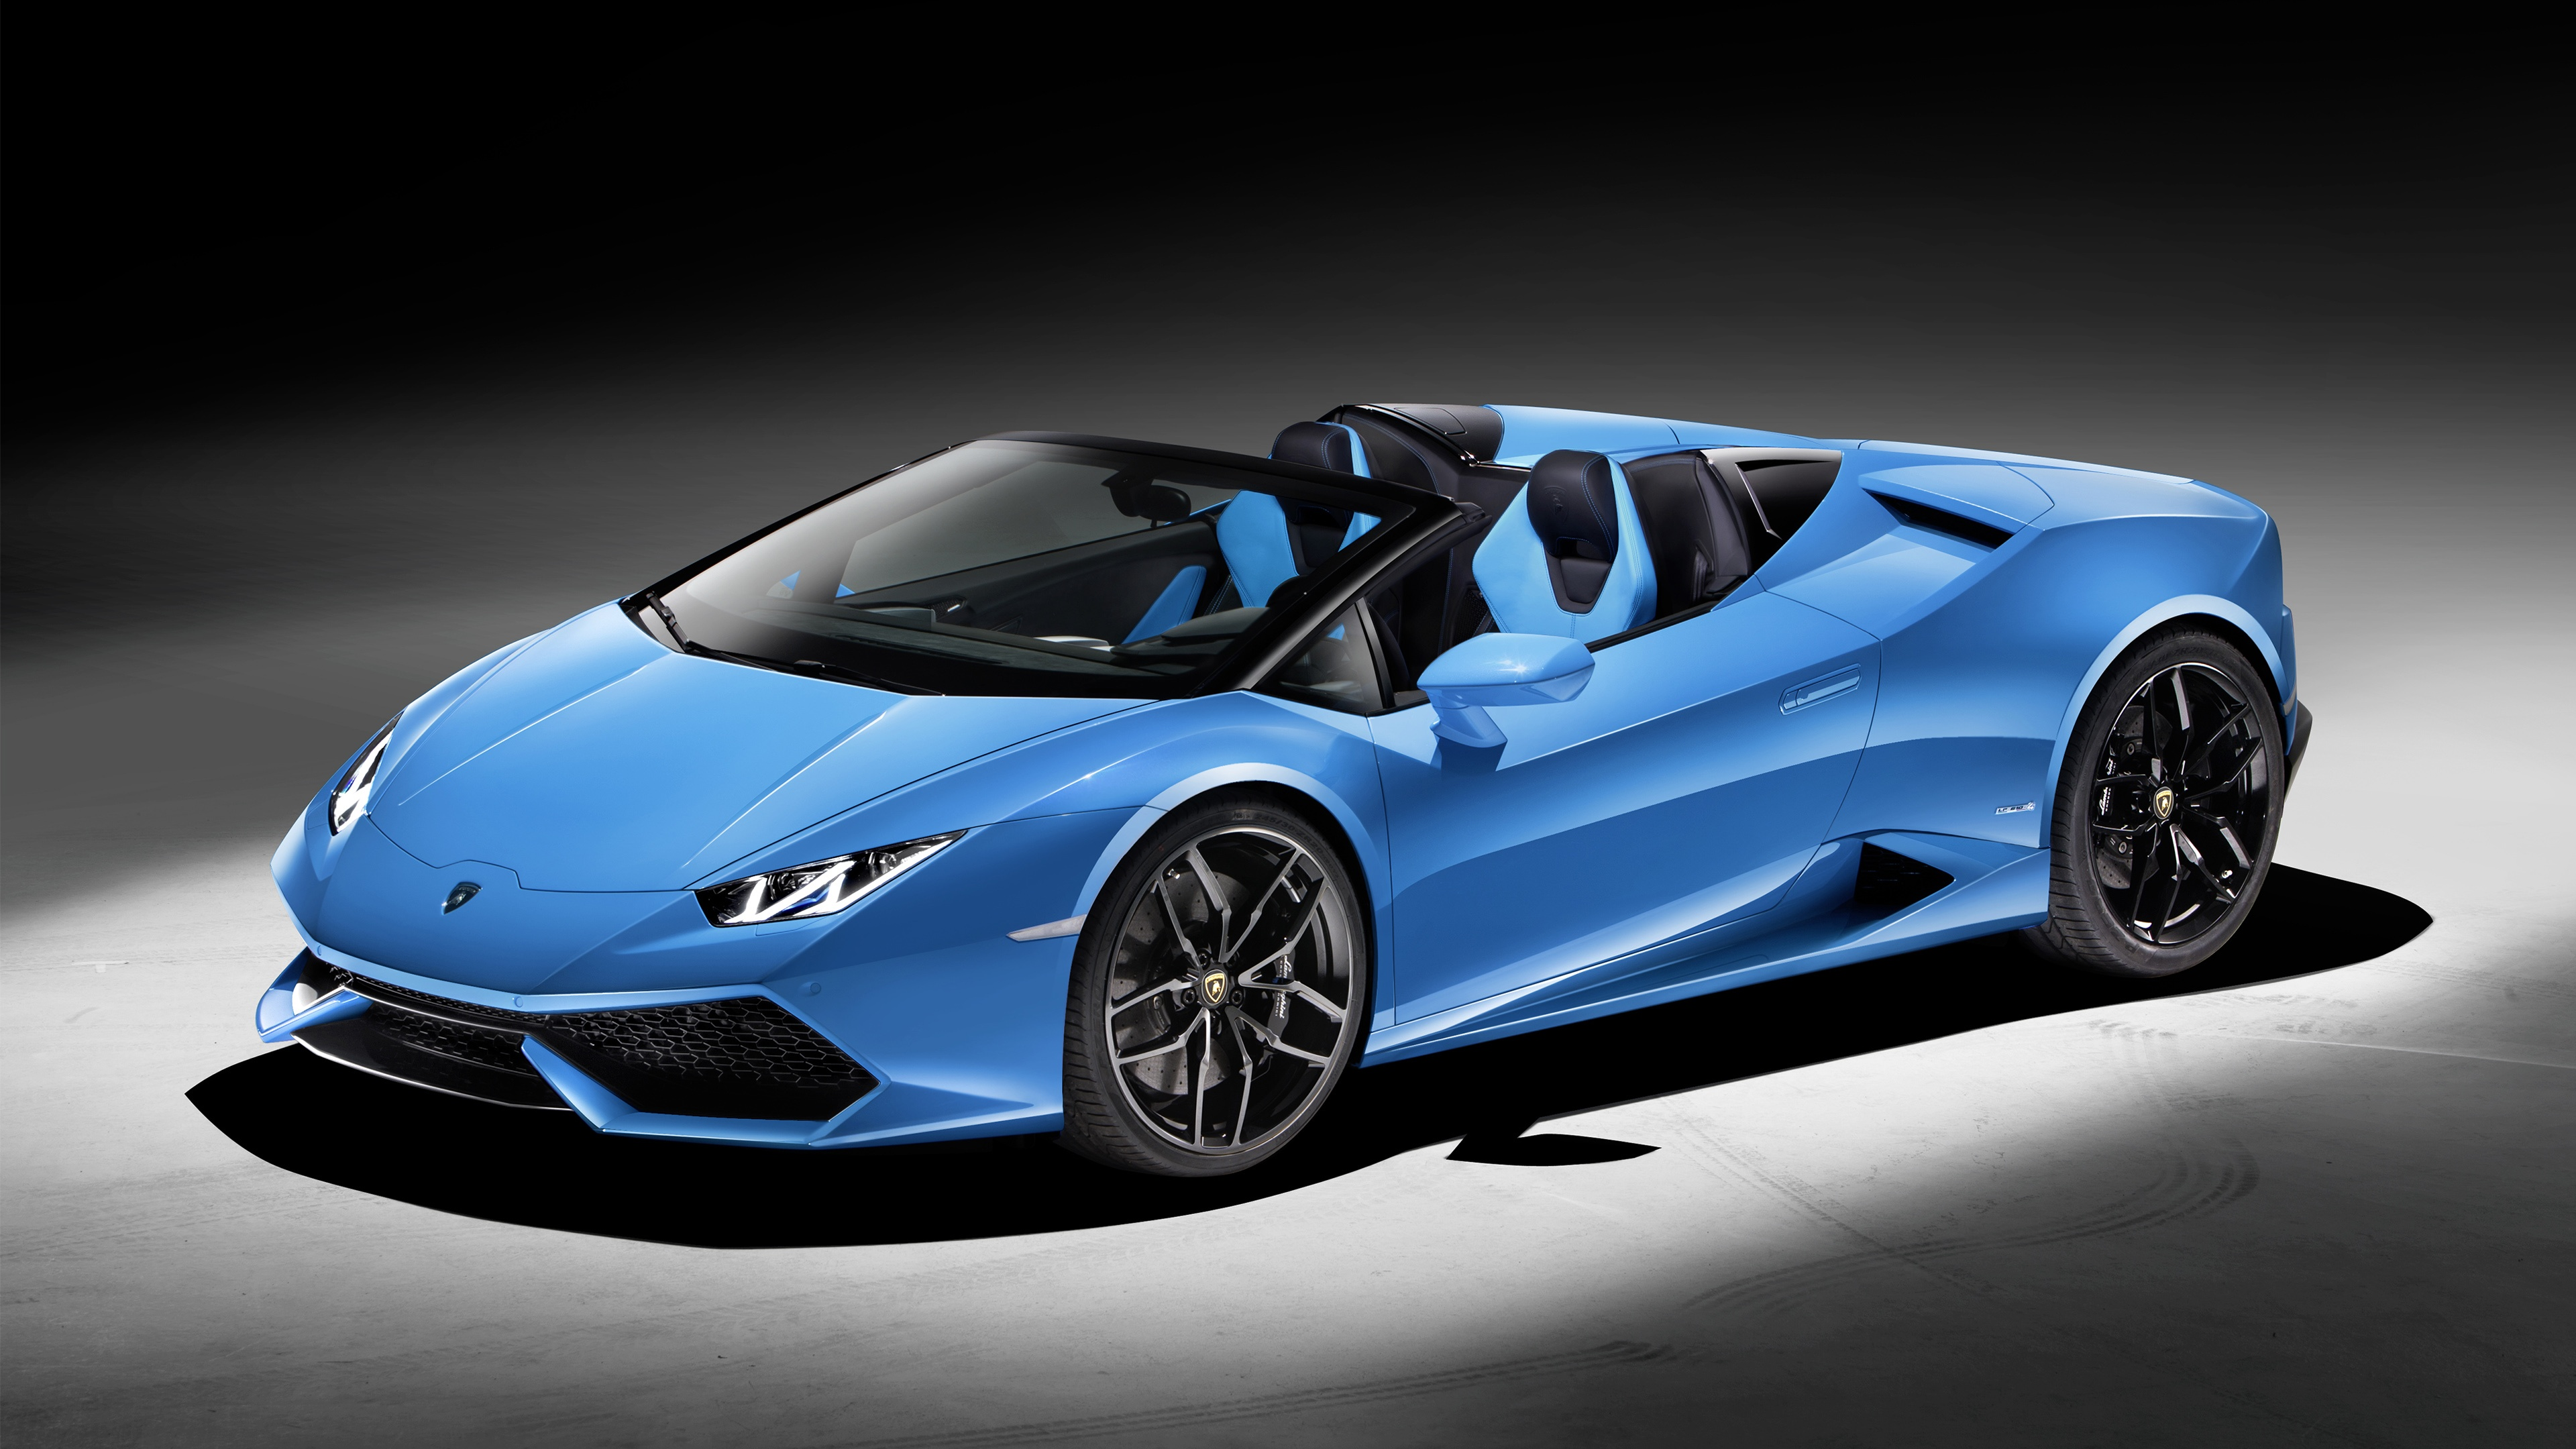 hd wallpaper background id685688 3840x2160 vehicles lamborghini huracan - Lamborghini Huracan Wallpaper